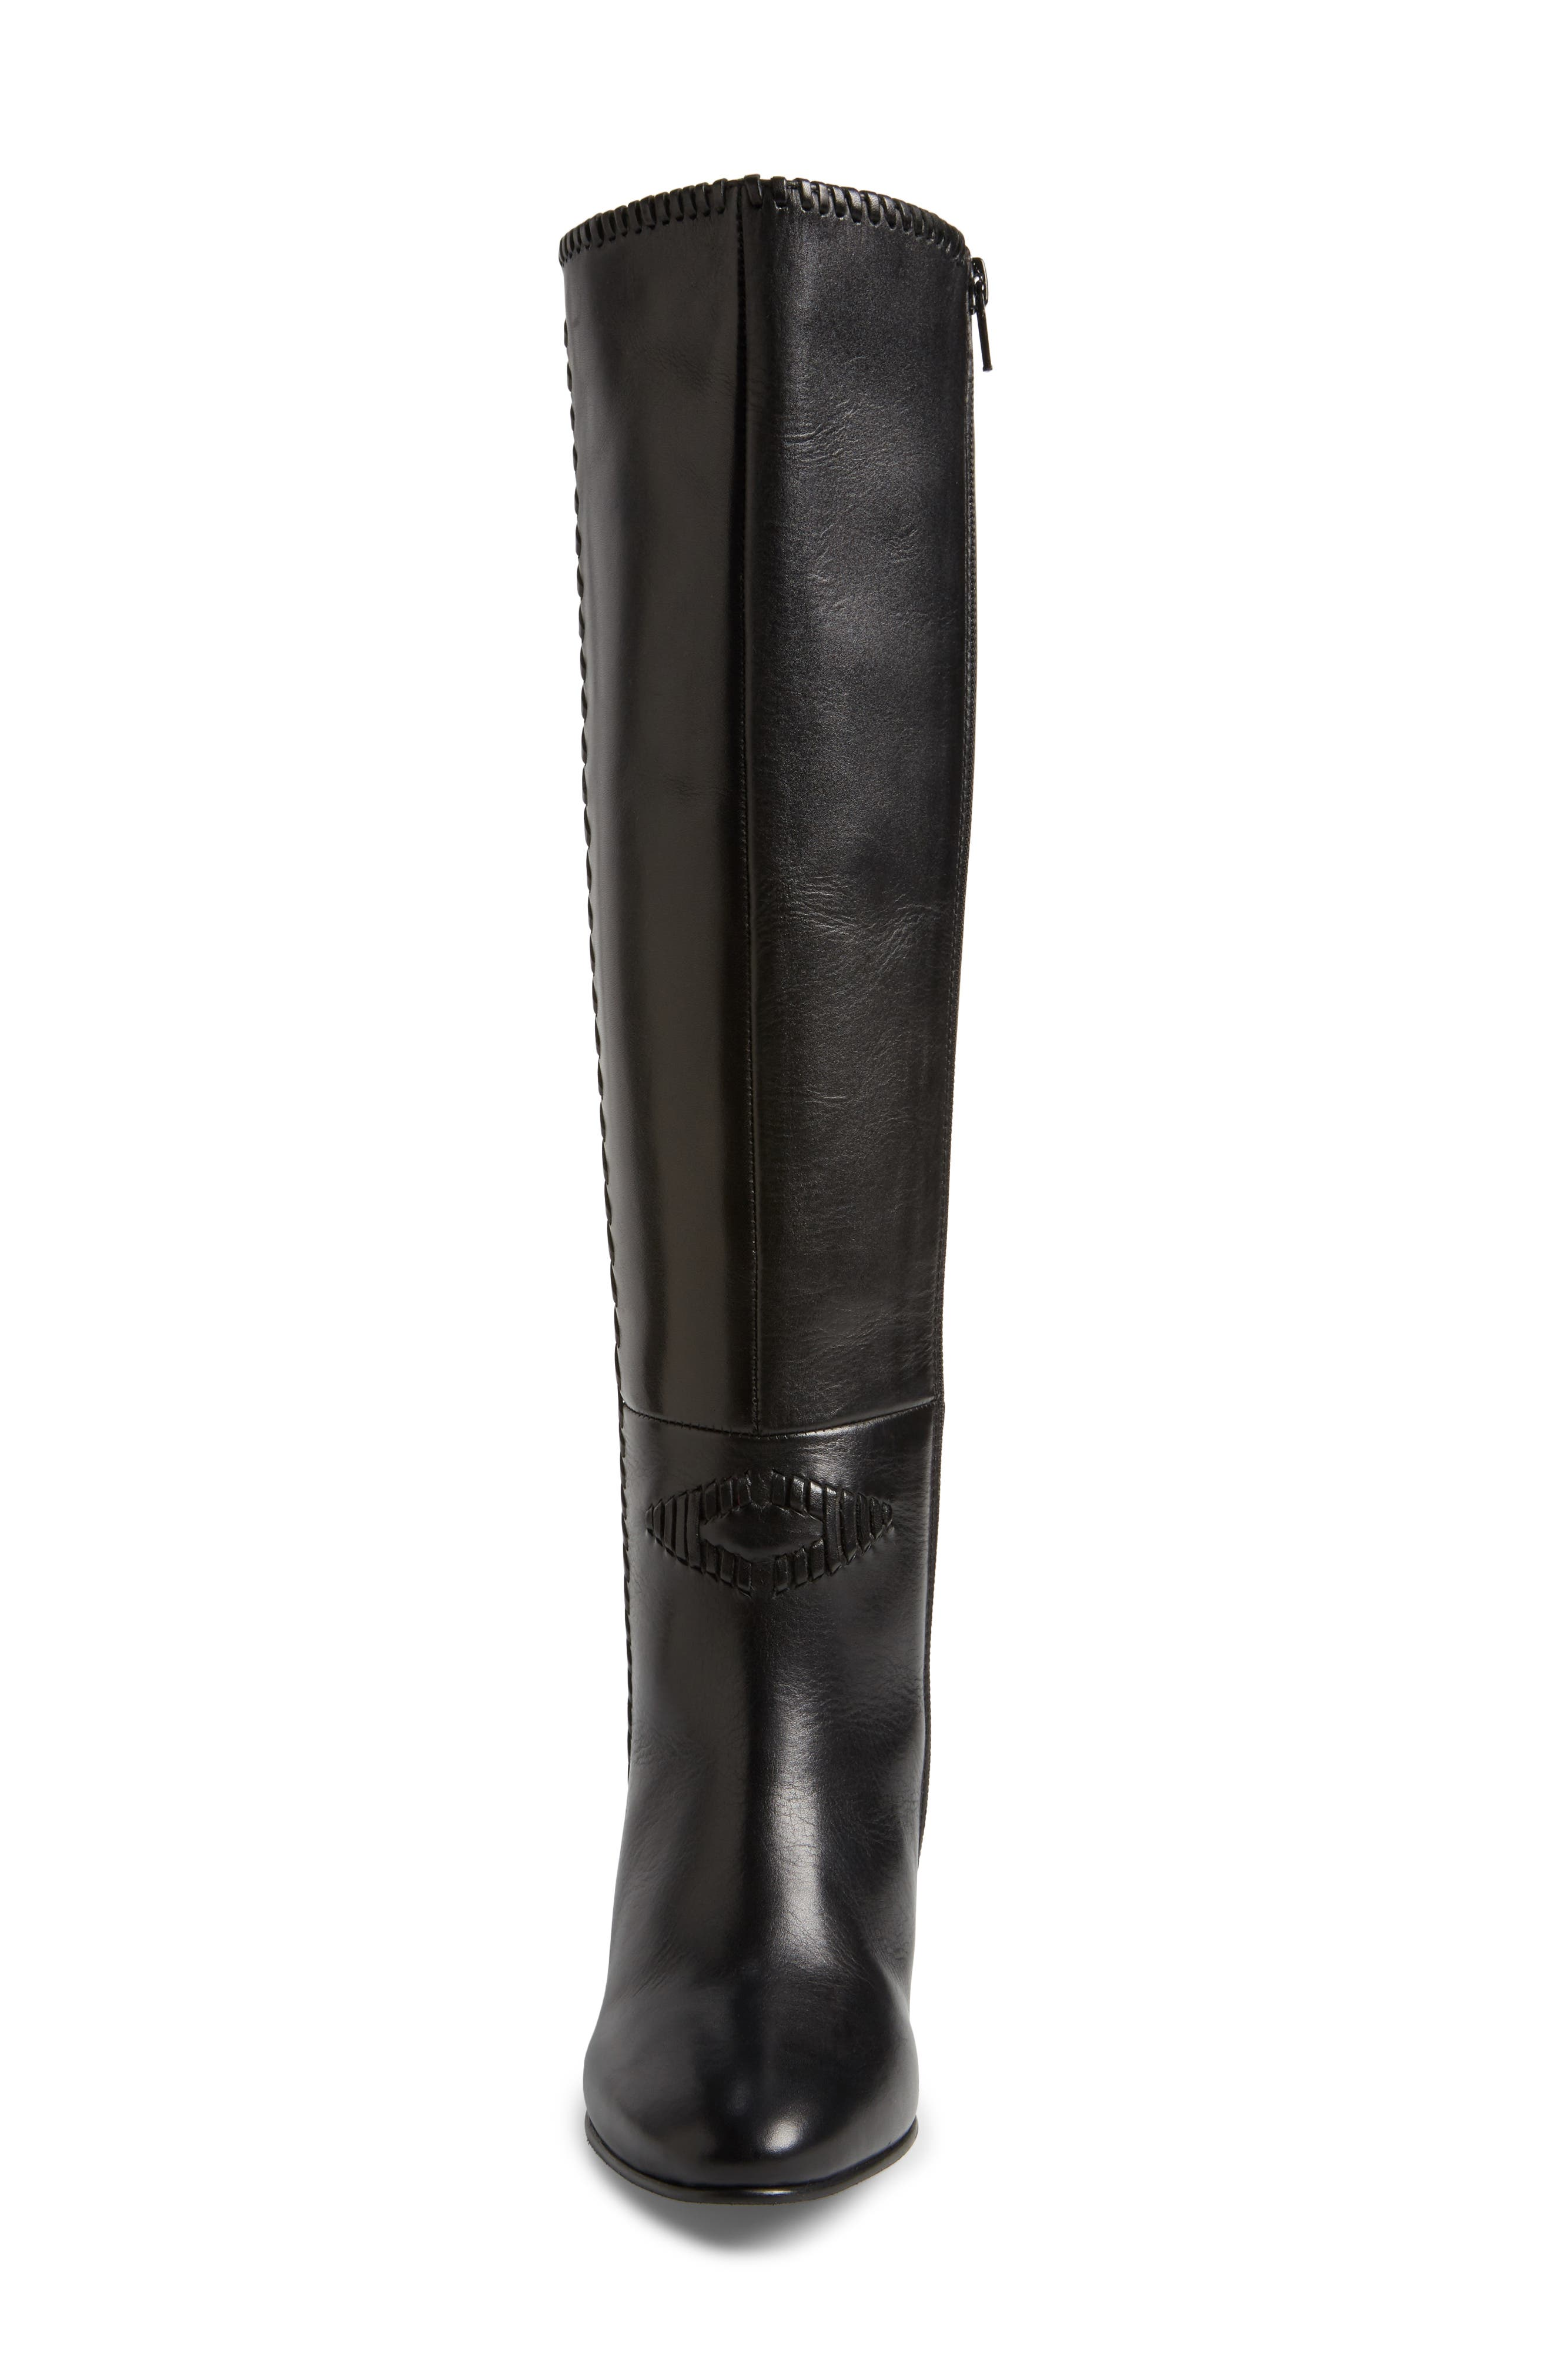 Reserved Knee High Boot,                             Alternate thumbnail 4, color,                             001